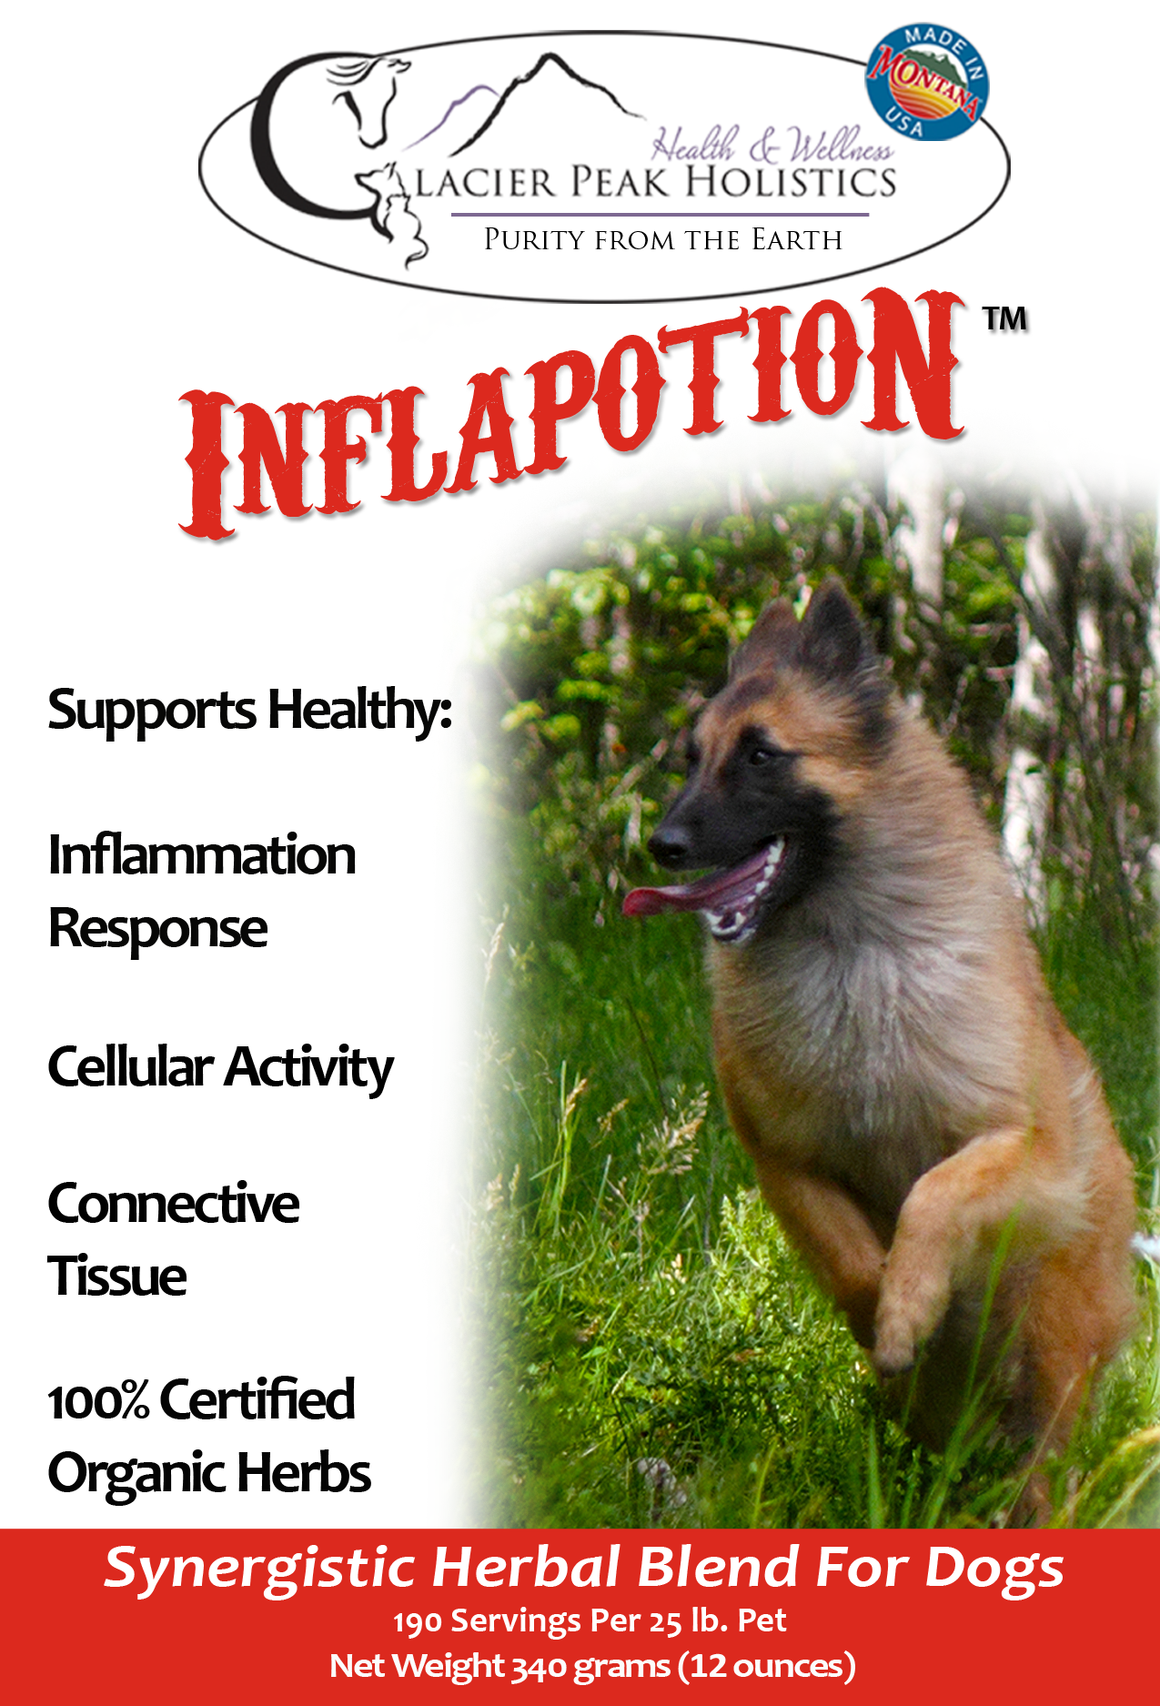 Glacier Peak Holistics Inflapotion Powder Dog Supplement, 12-oz